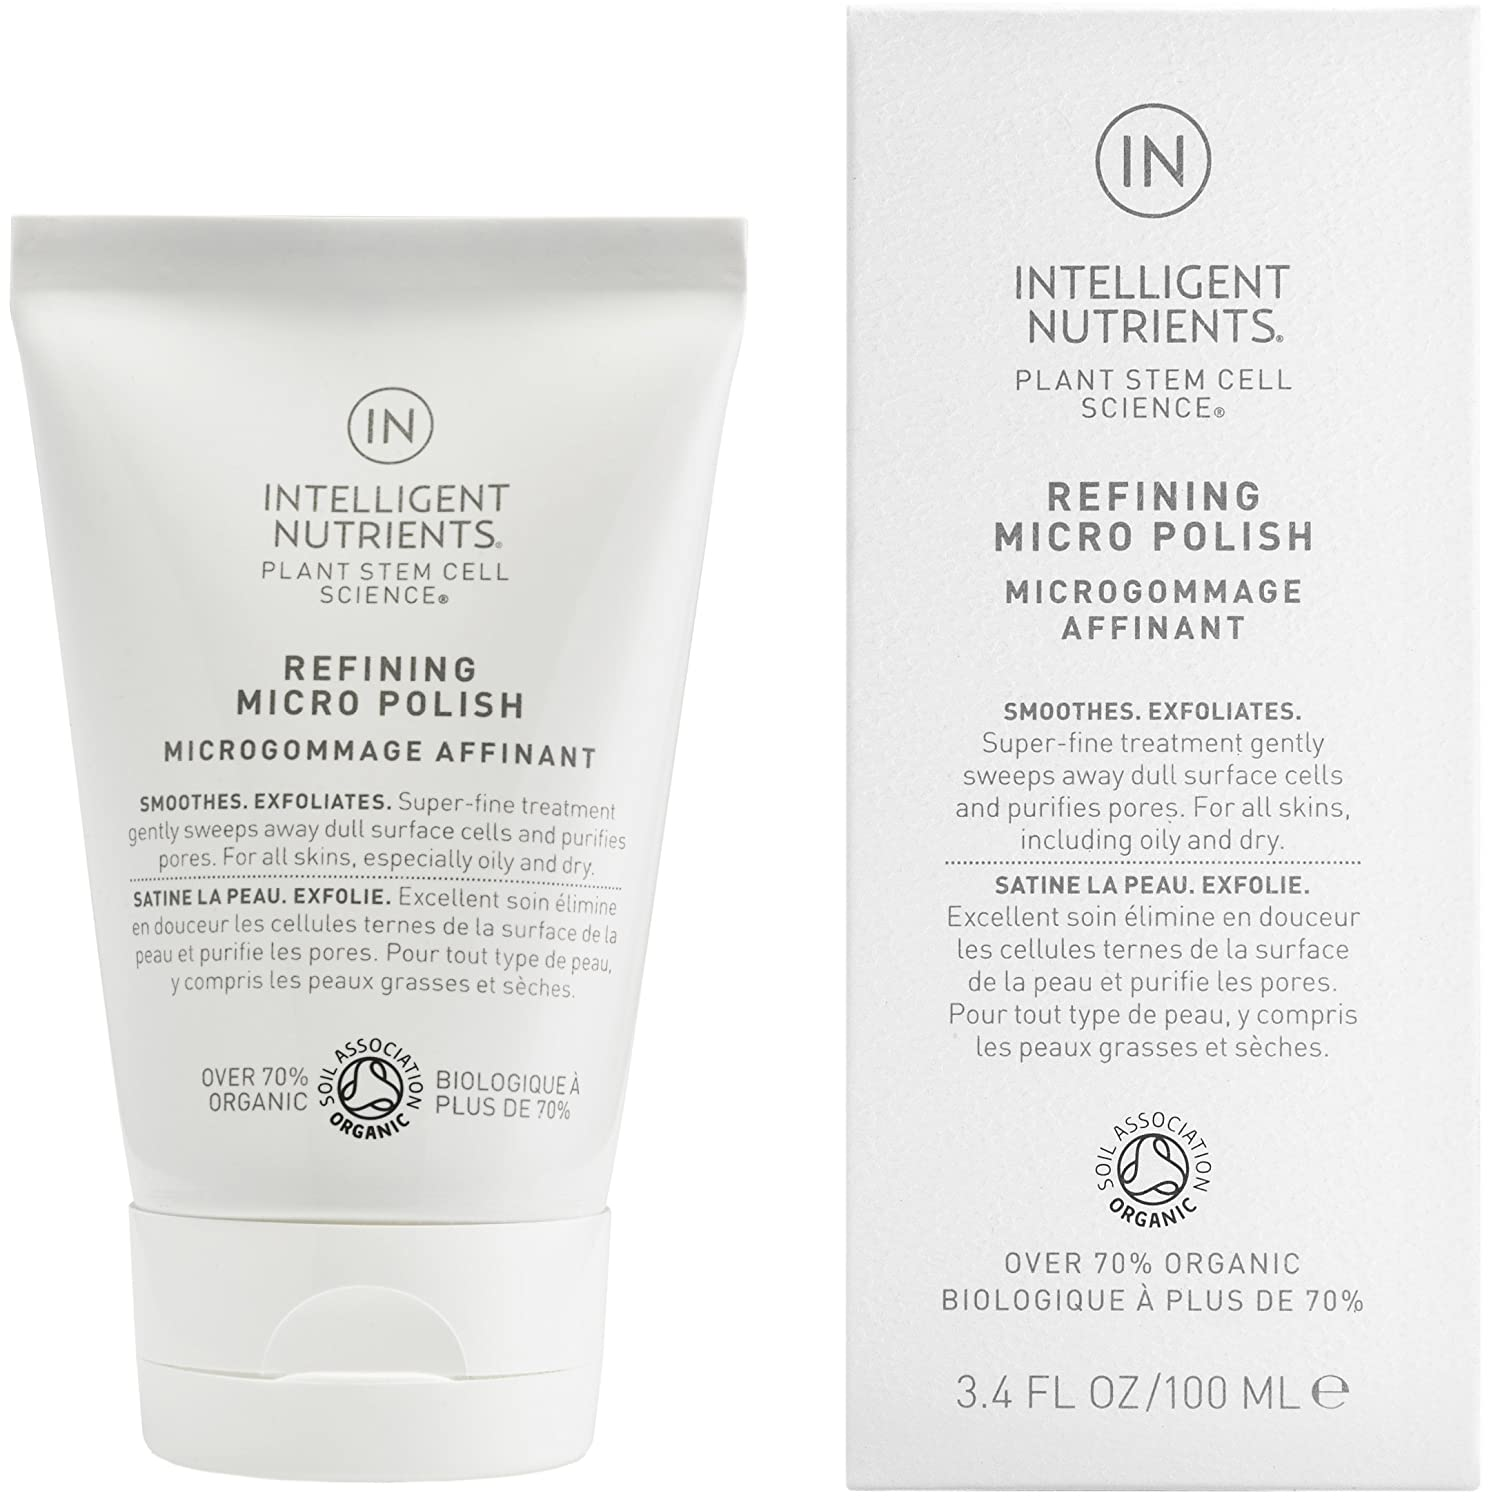 Intelligent Nutrients - Refining Micro Polish for All Skin Types, 3.4oz